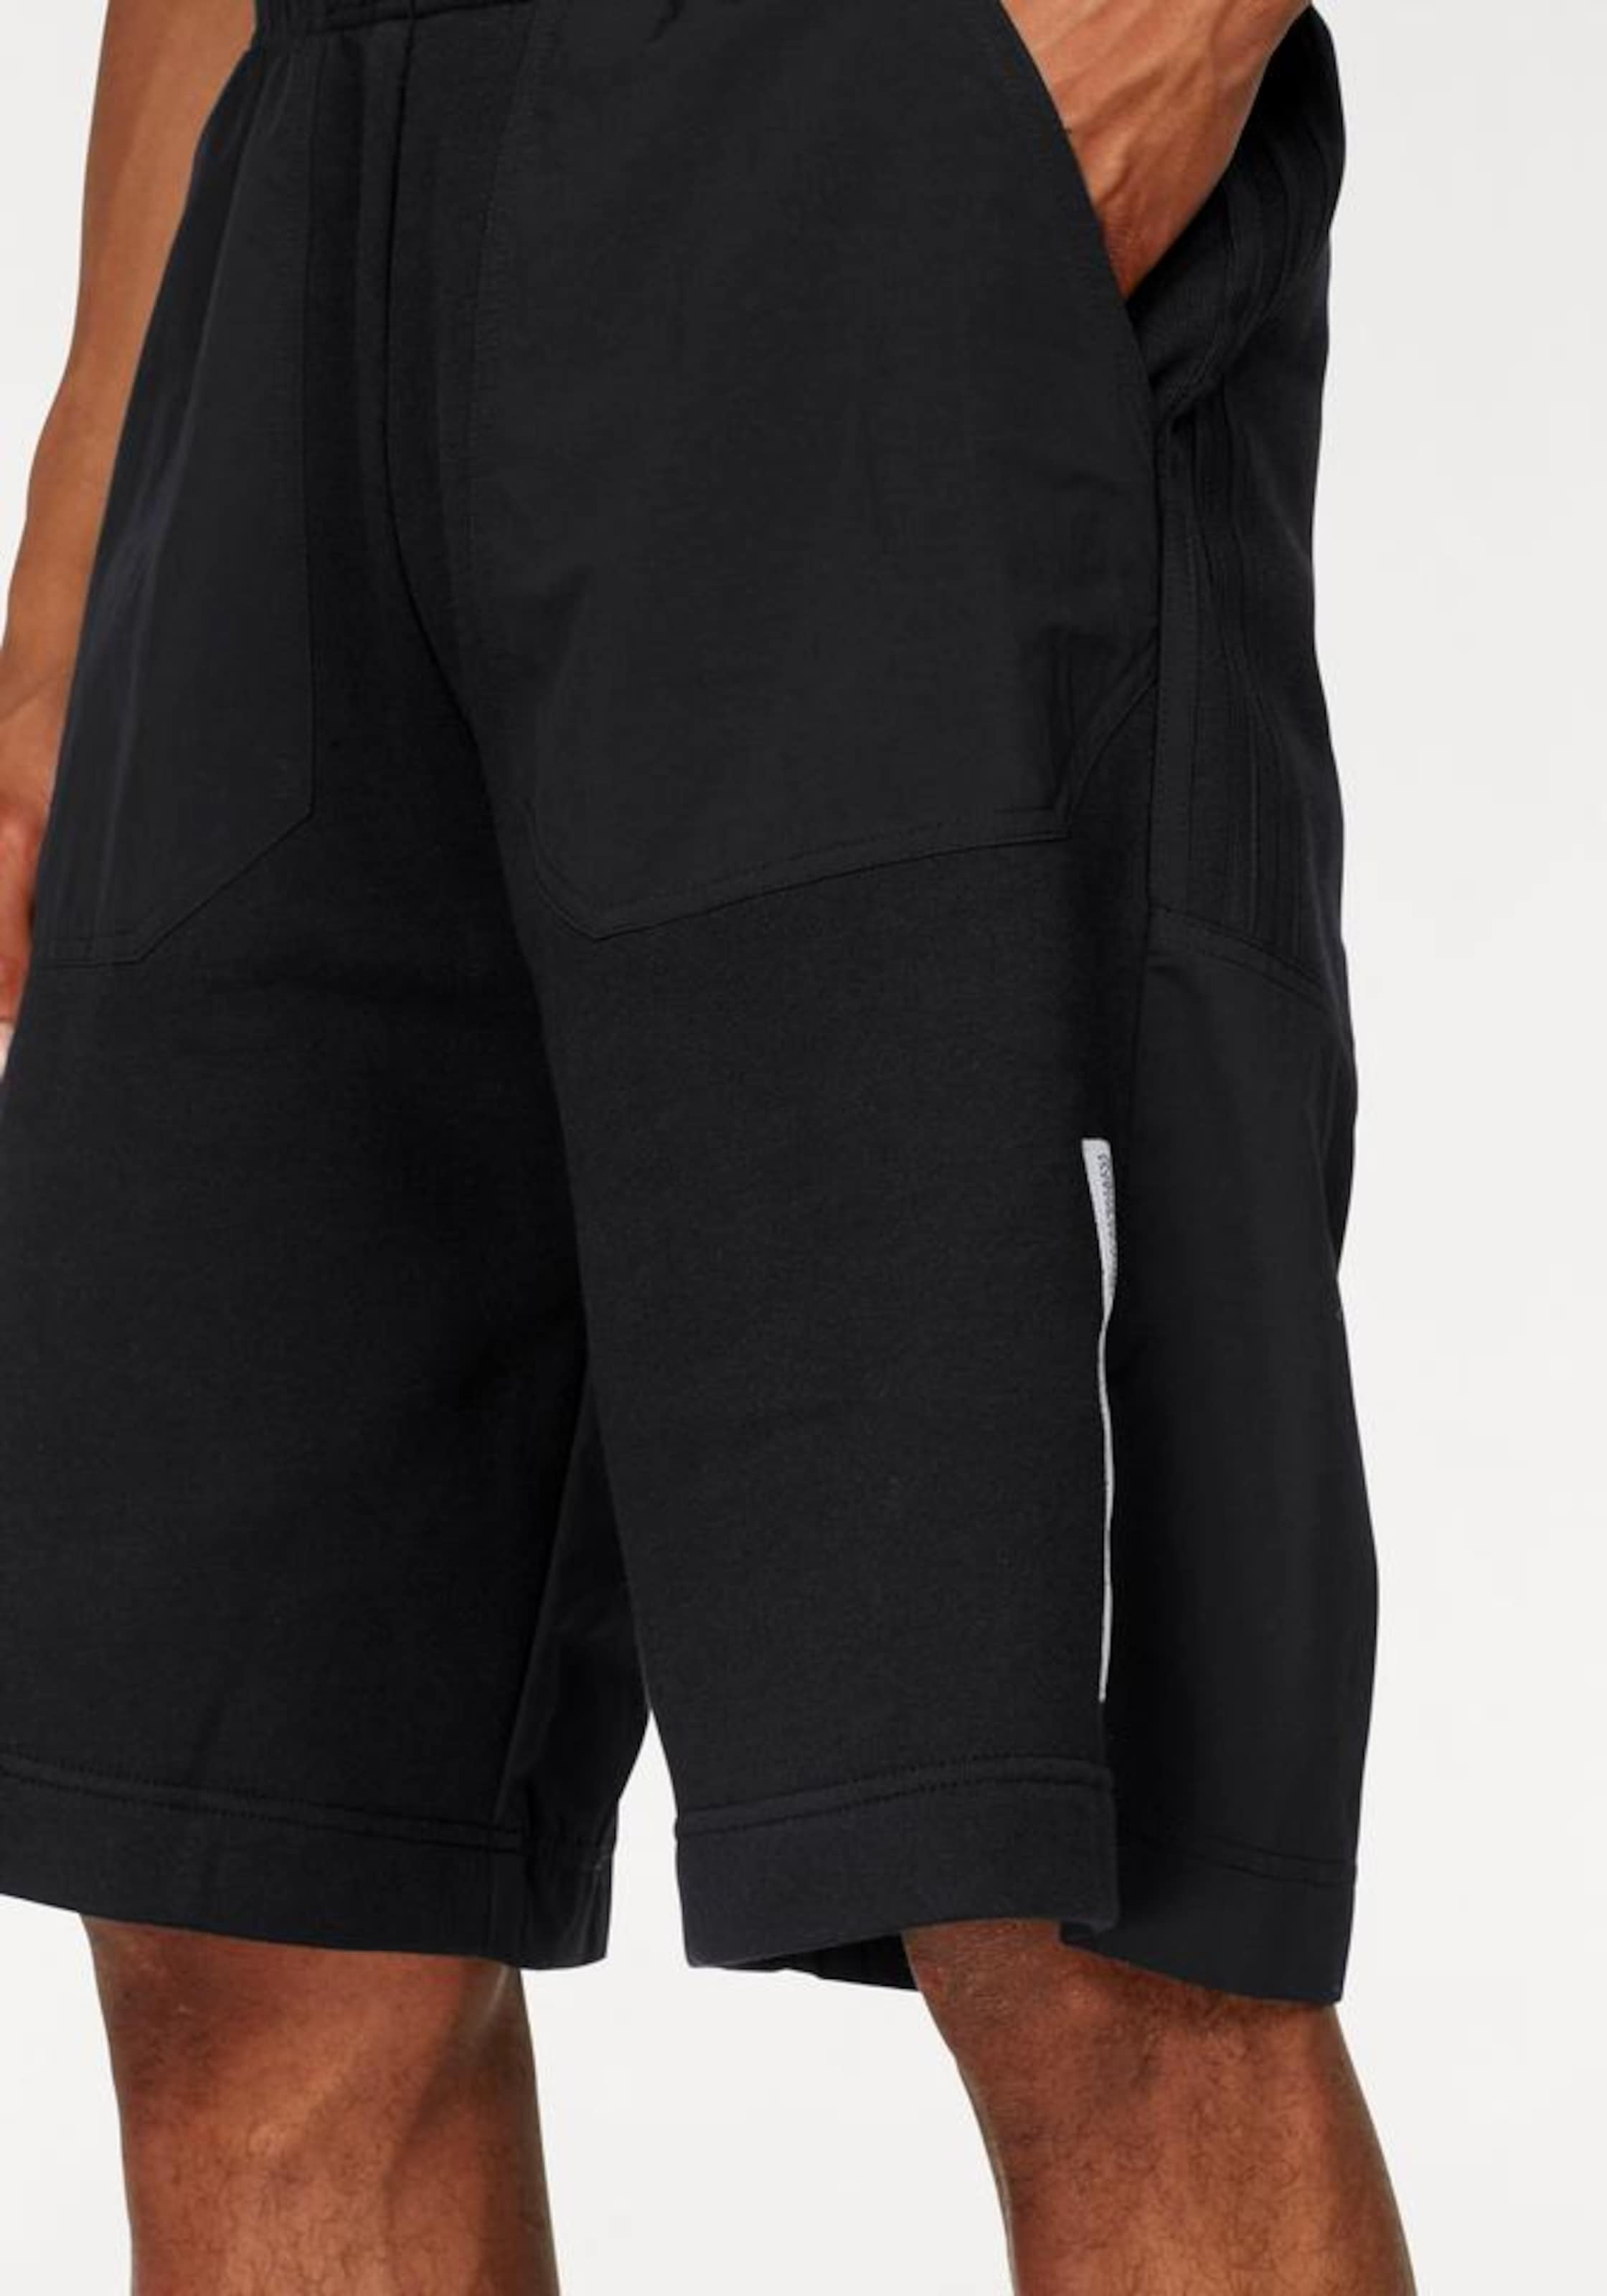 Short' Schwarz Adidas 'nmd Originals Shorts In TK1JlFc